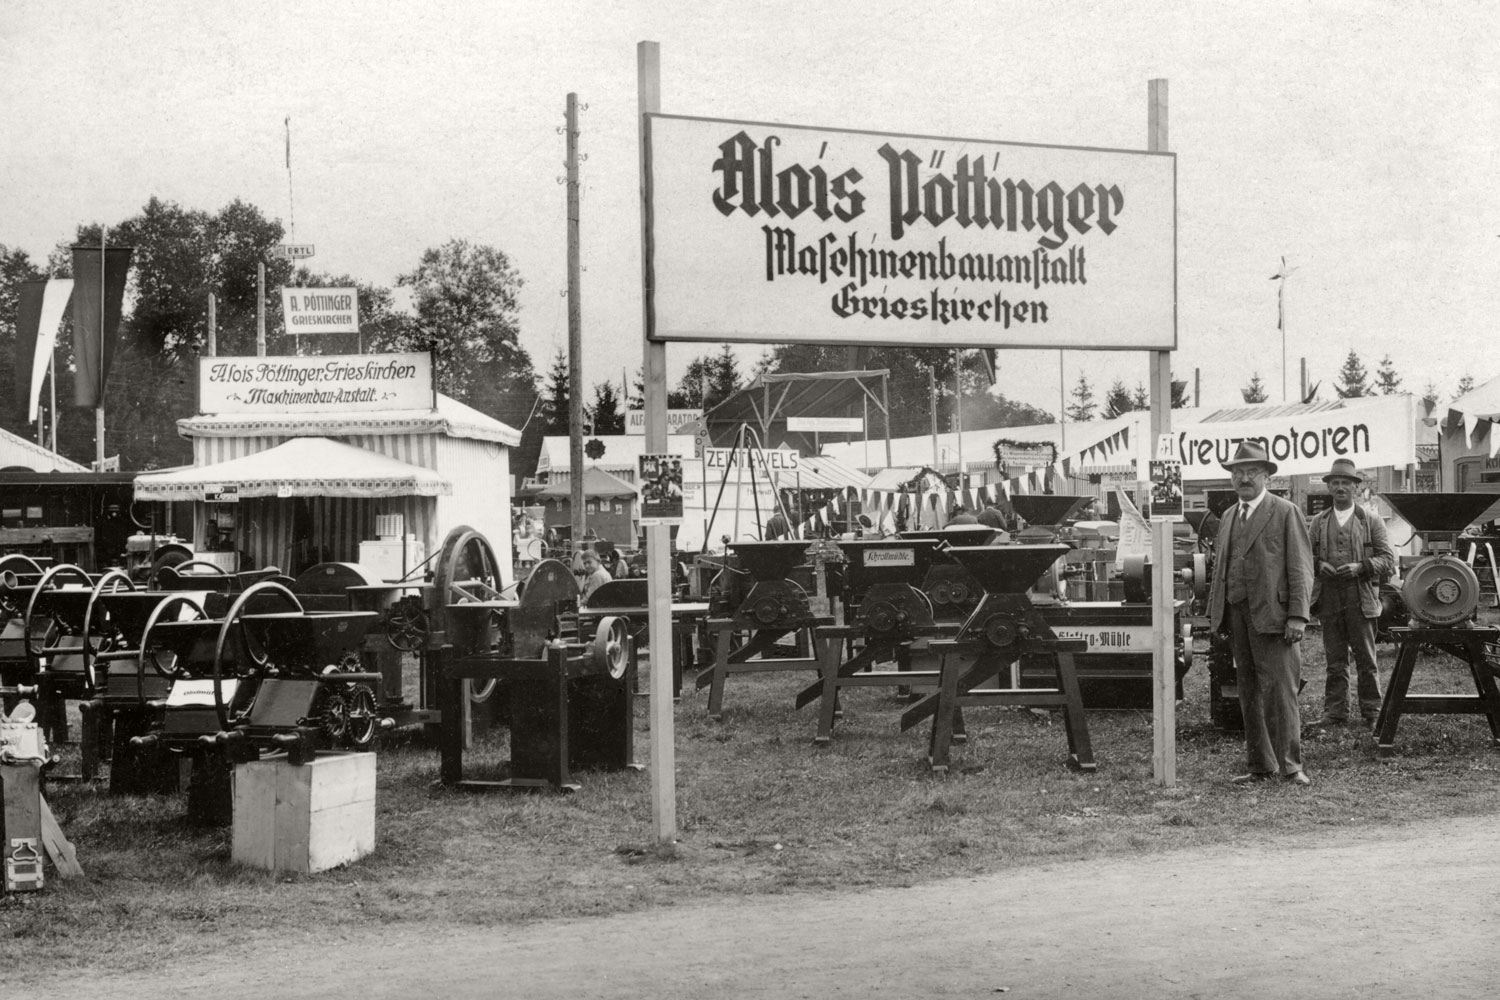 Even back then, money is invested in trade fair appearances – just look at the tent at the back. A proud Alois Pöttinger stands out front.